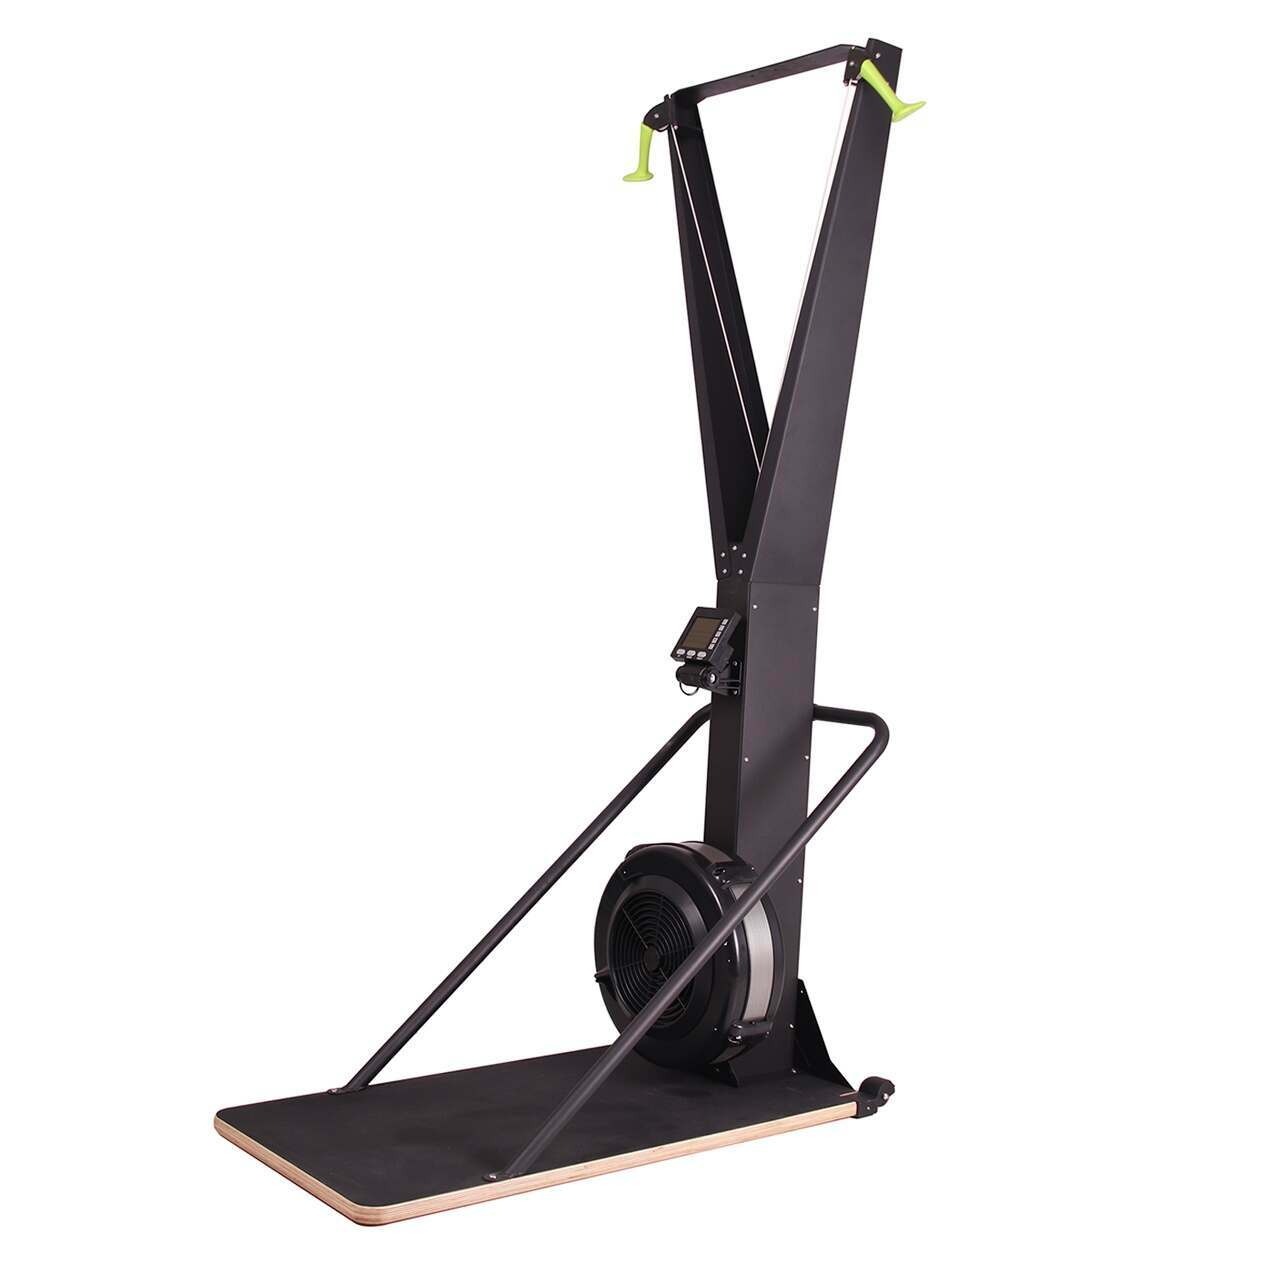 METIS FURY Ski Exercise Machine